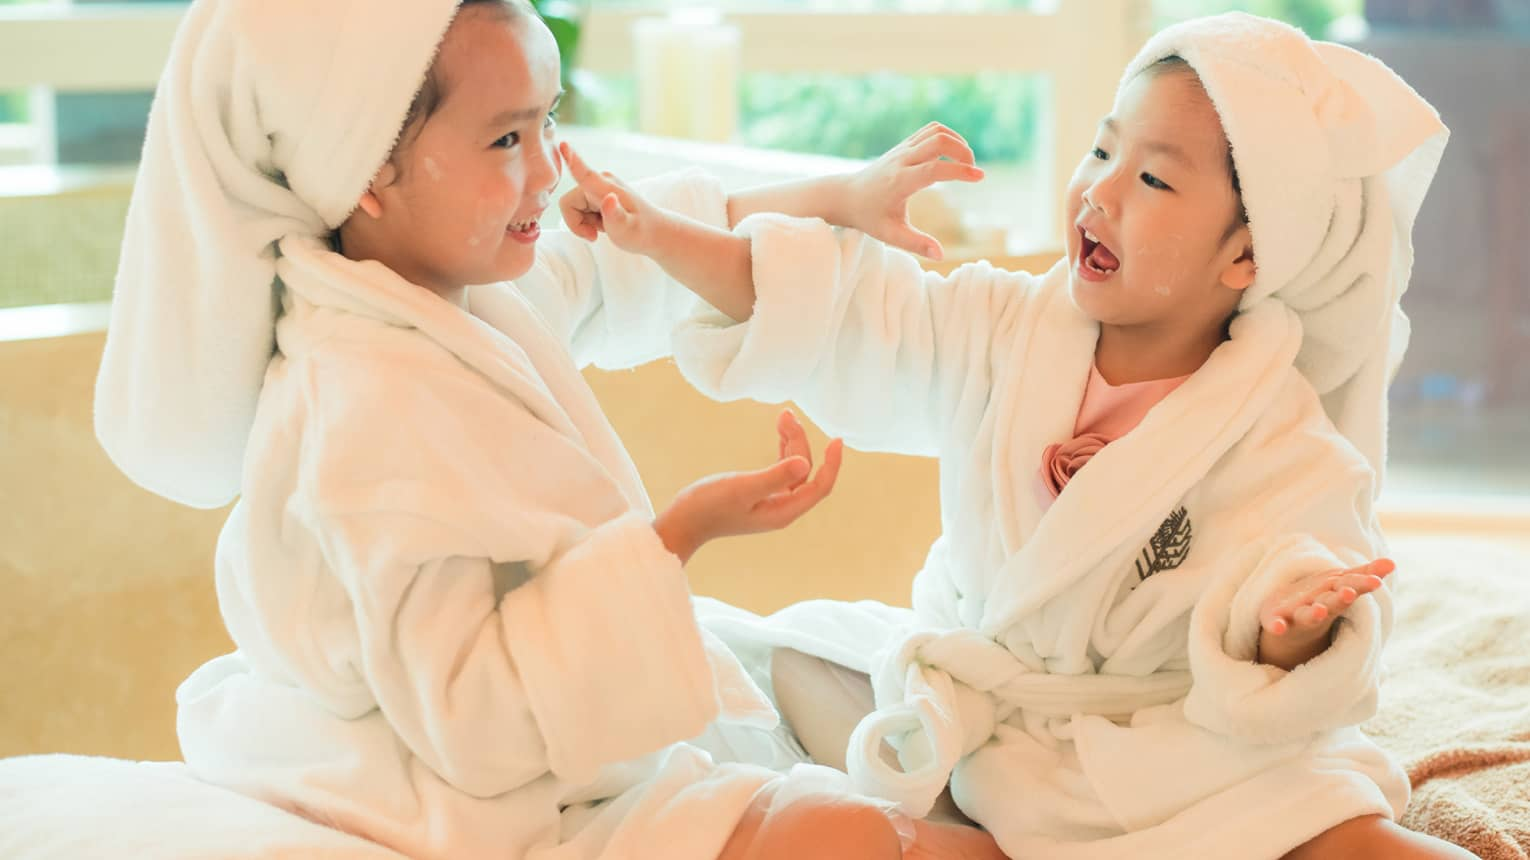 Two laughing young children in white bathrobes with towels around hair put lotion on each other's faces